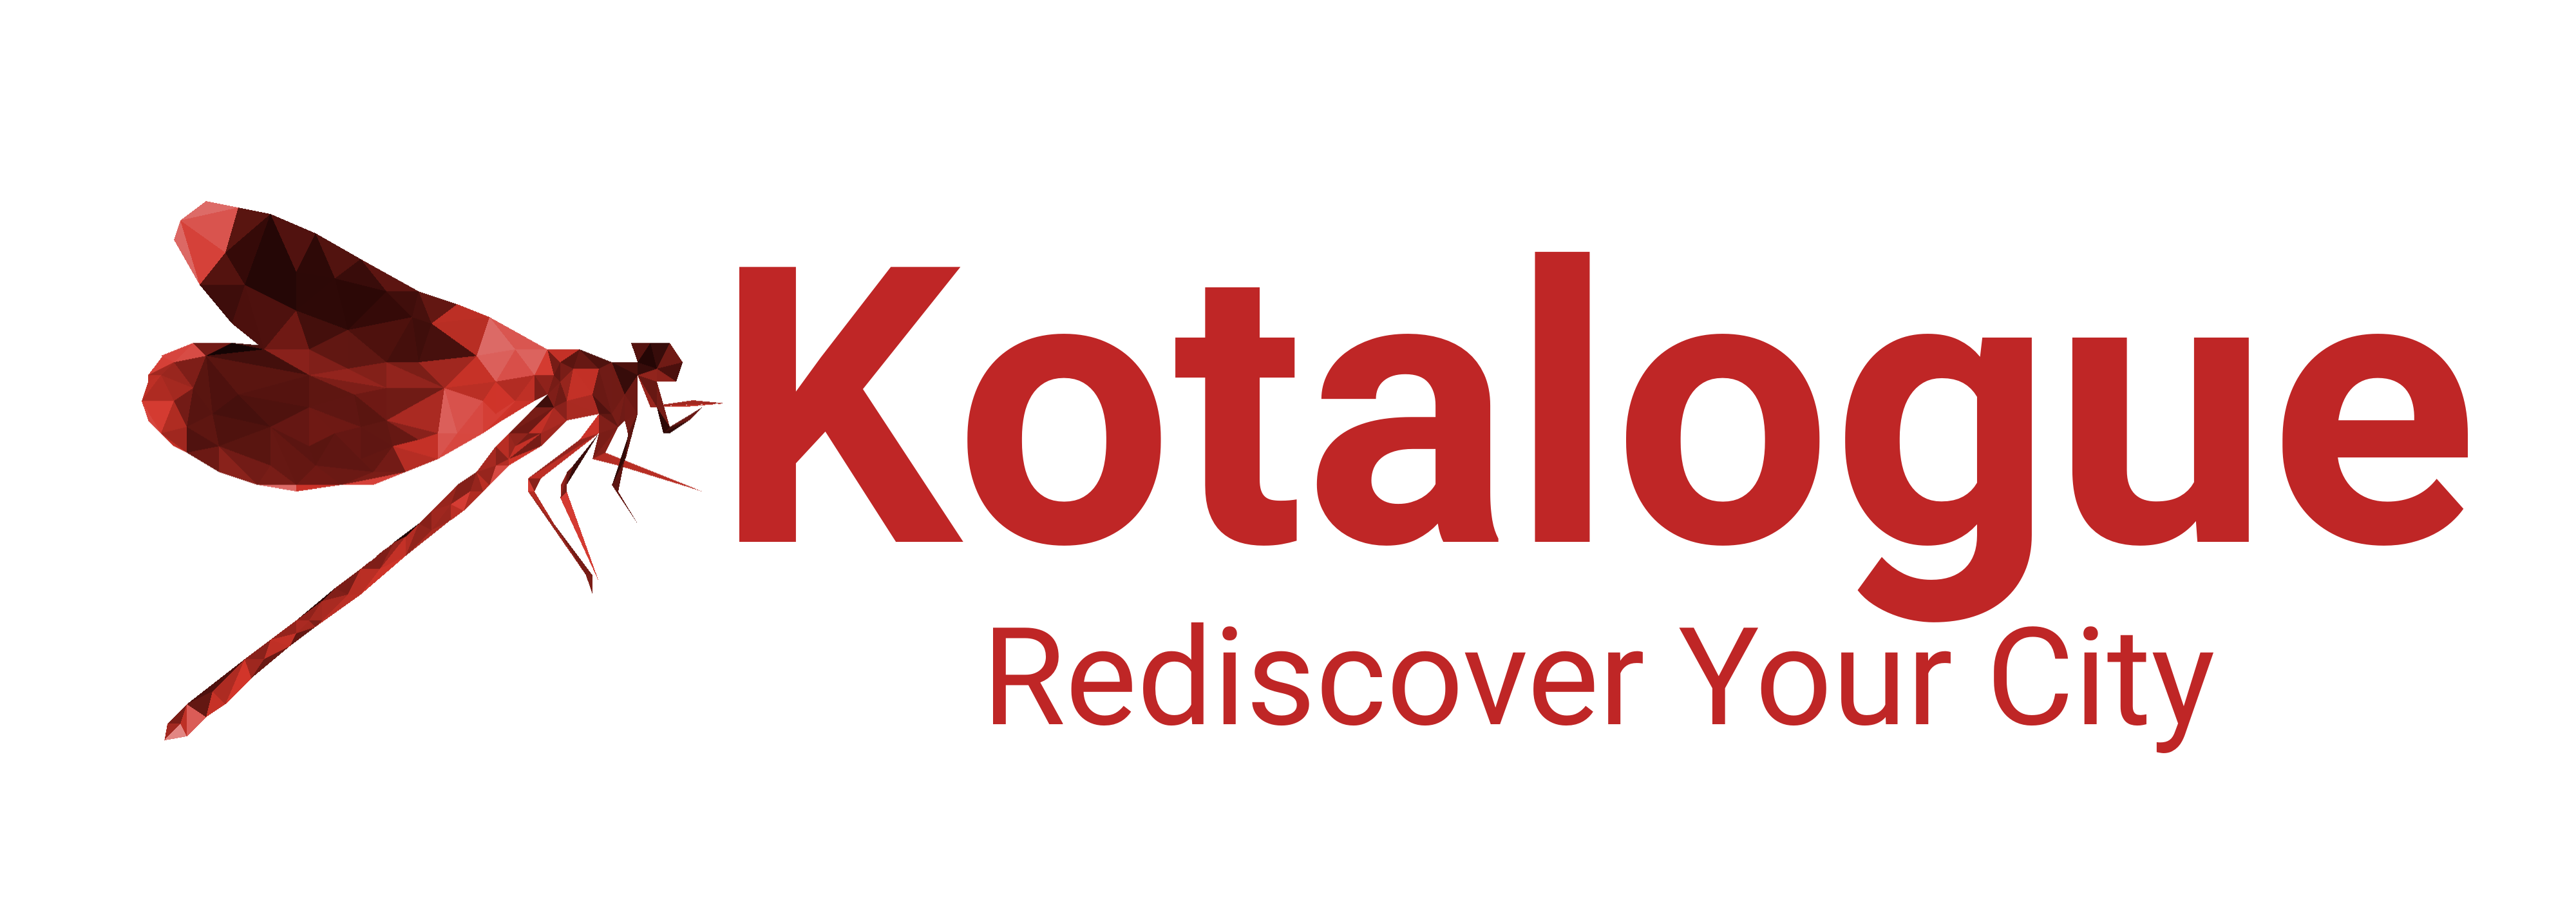 Kotalogue